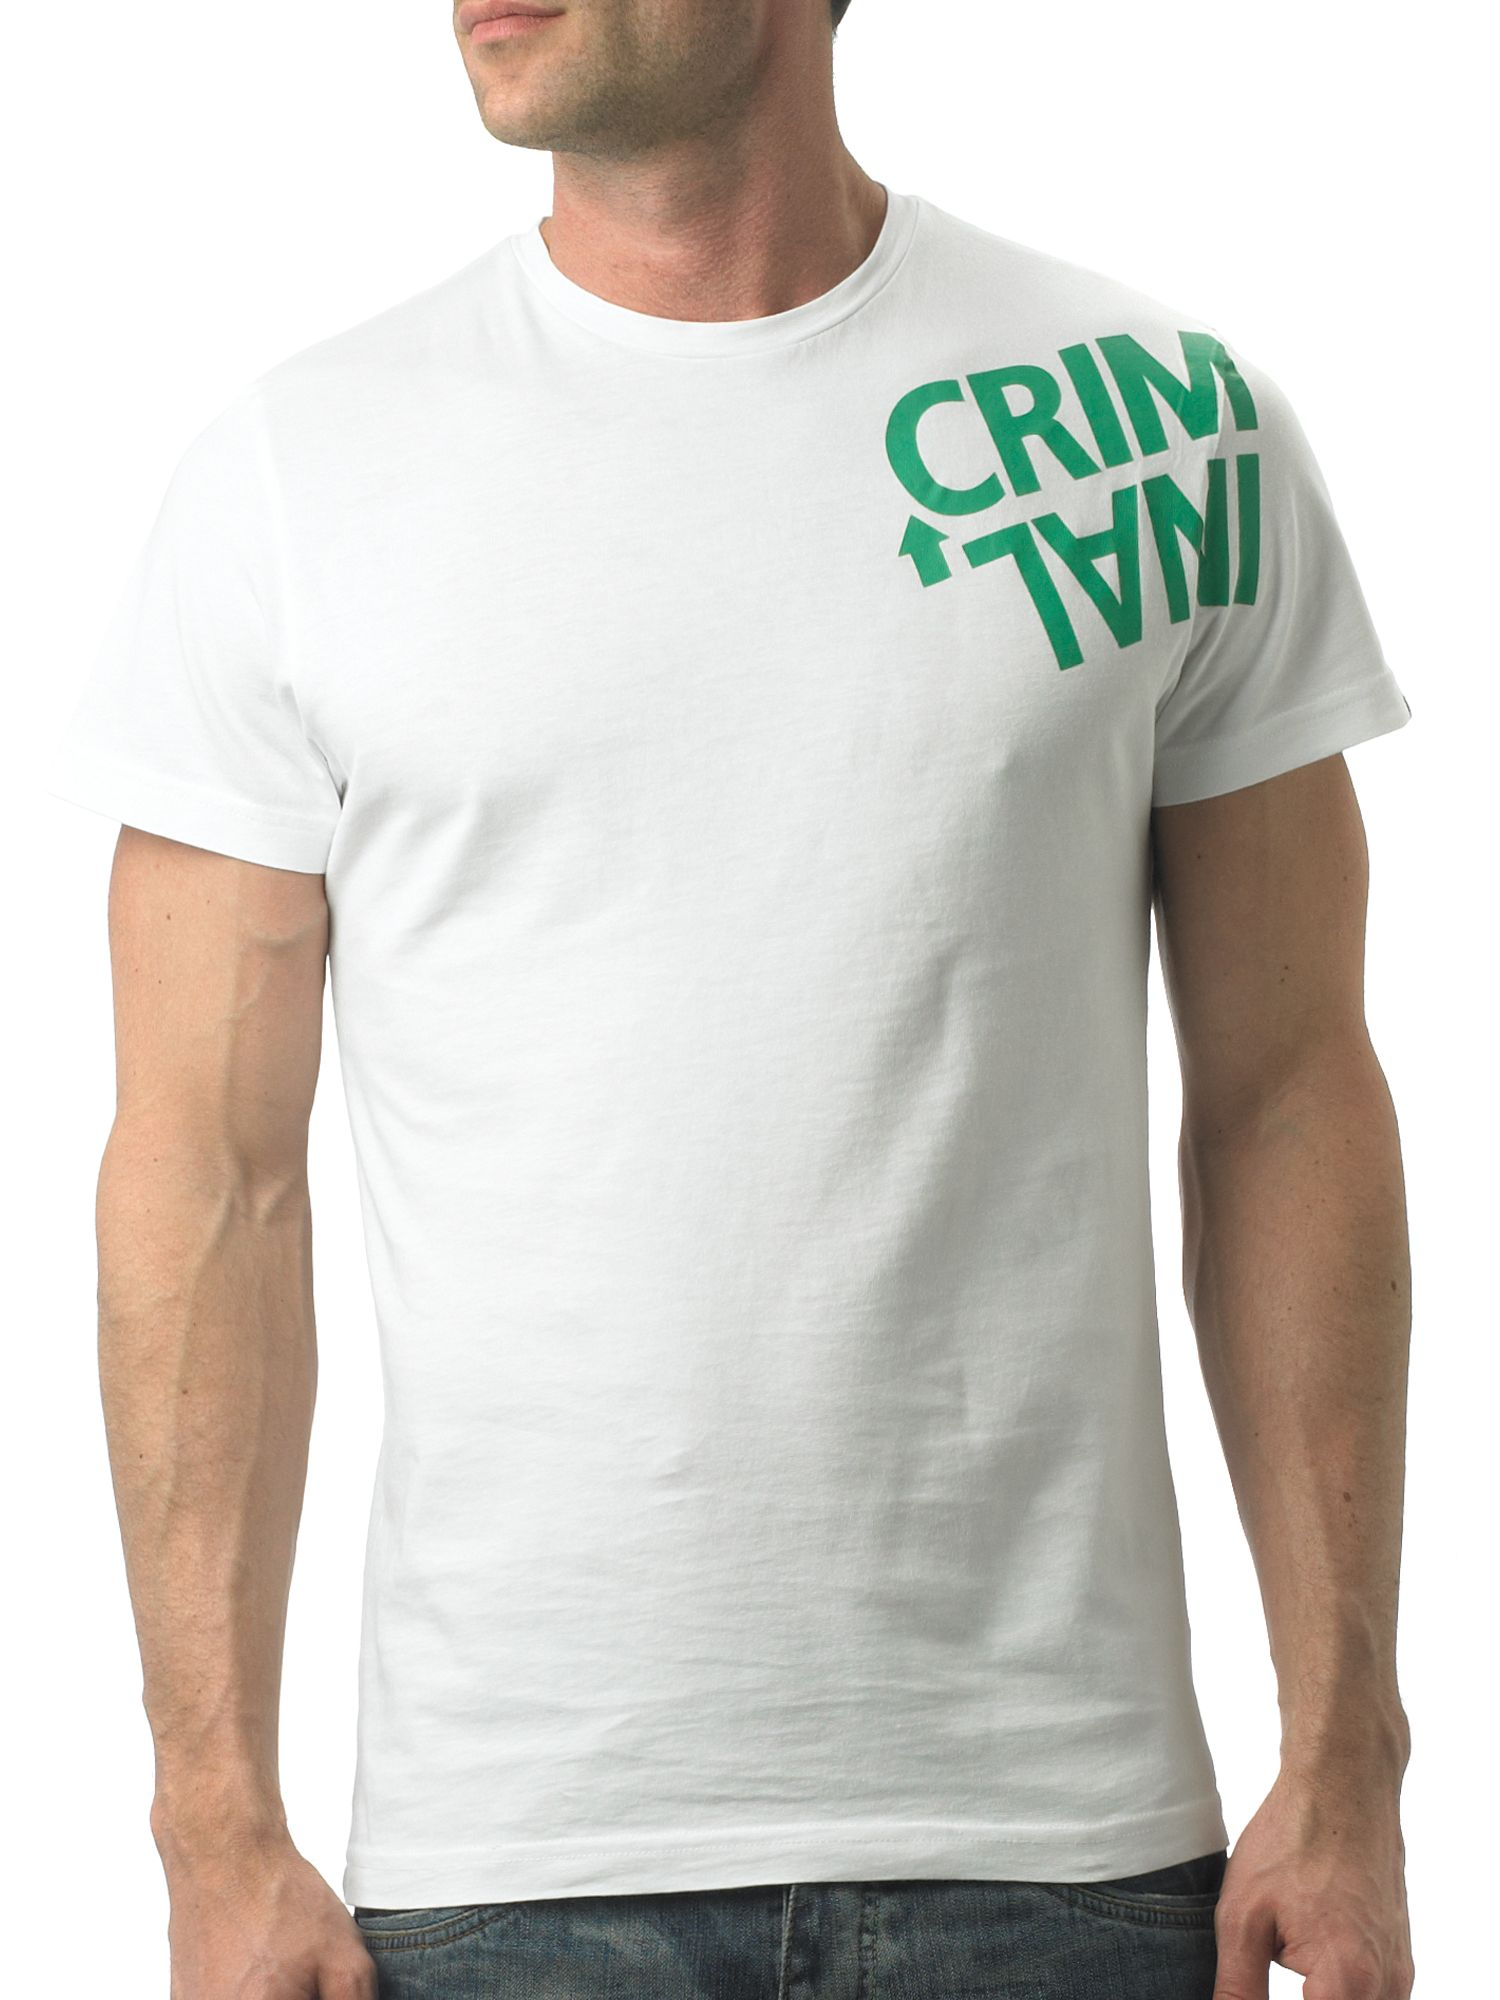 Criminal Twisted logo print crew-neck T-shirt - Charcoal product image